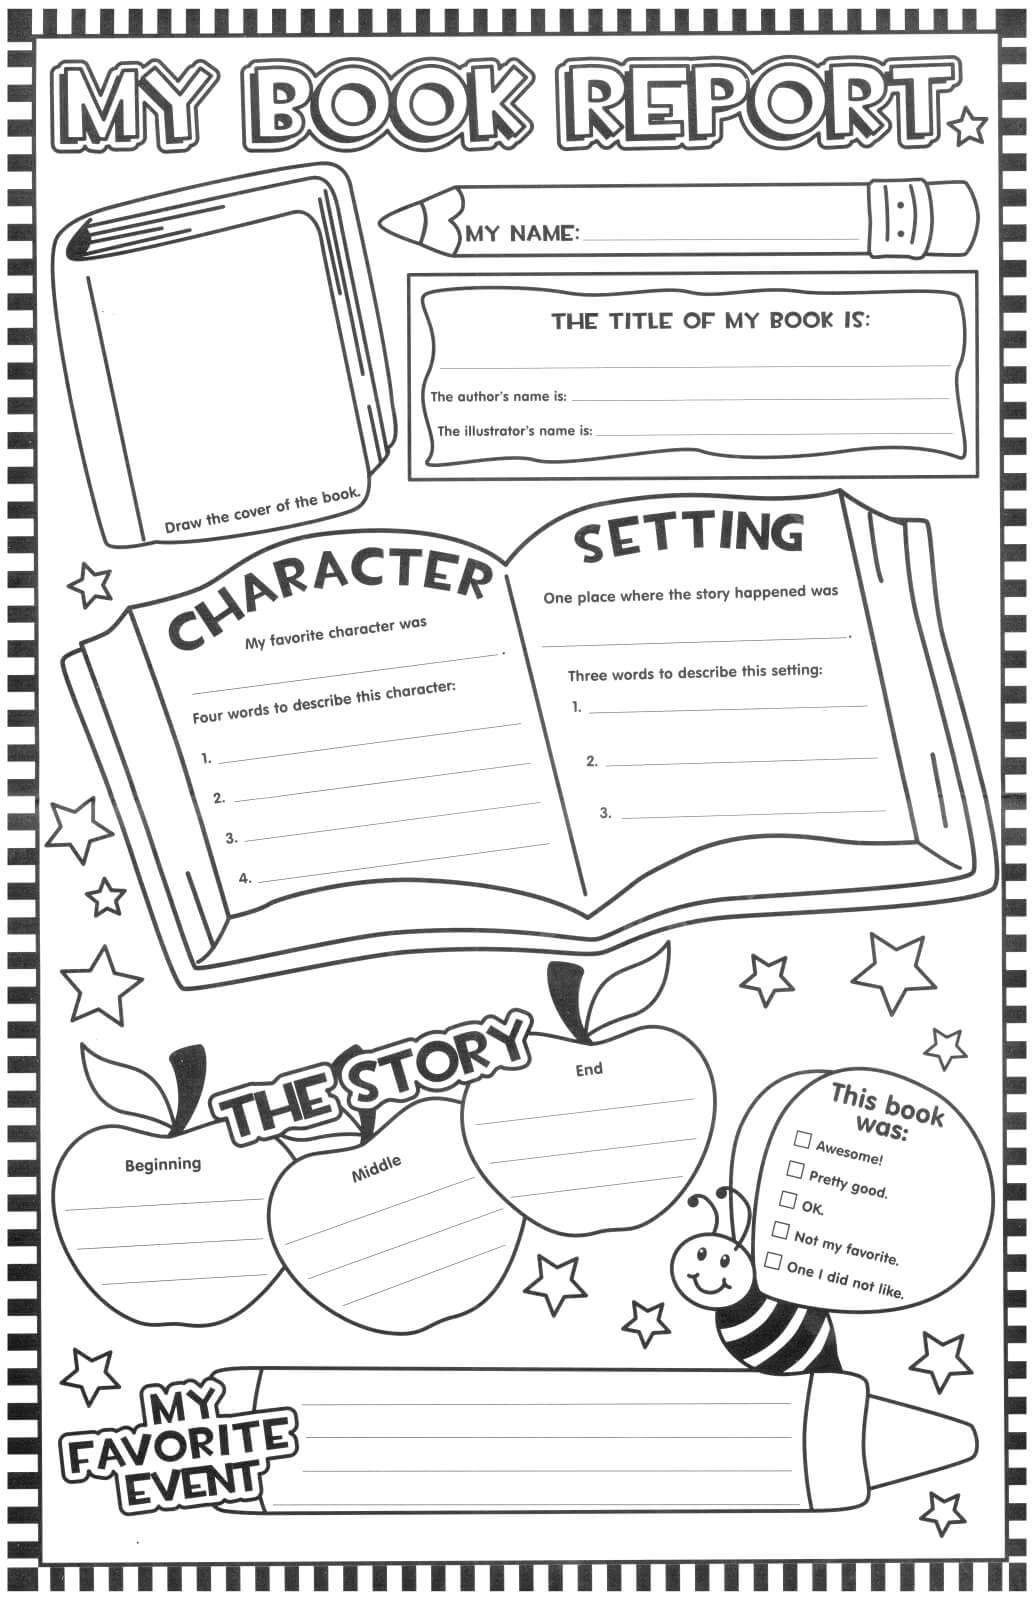 Book Report Poster (Updated) | First Grade Reading, 3Rd Intended For First Grade Book Report Template